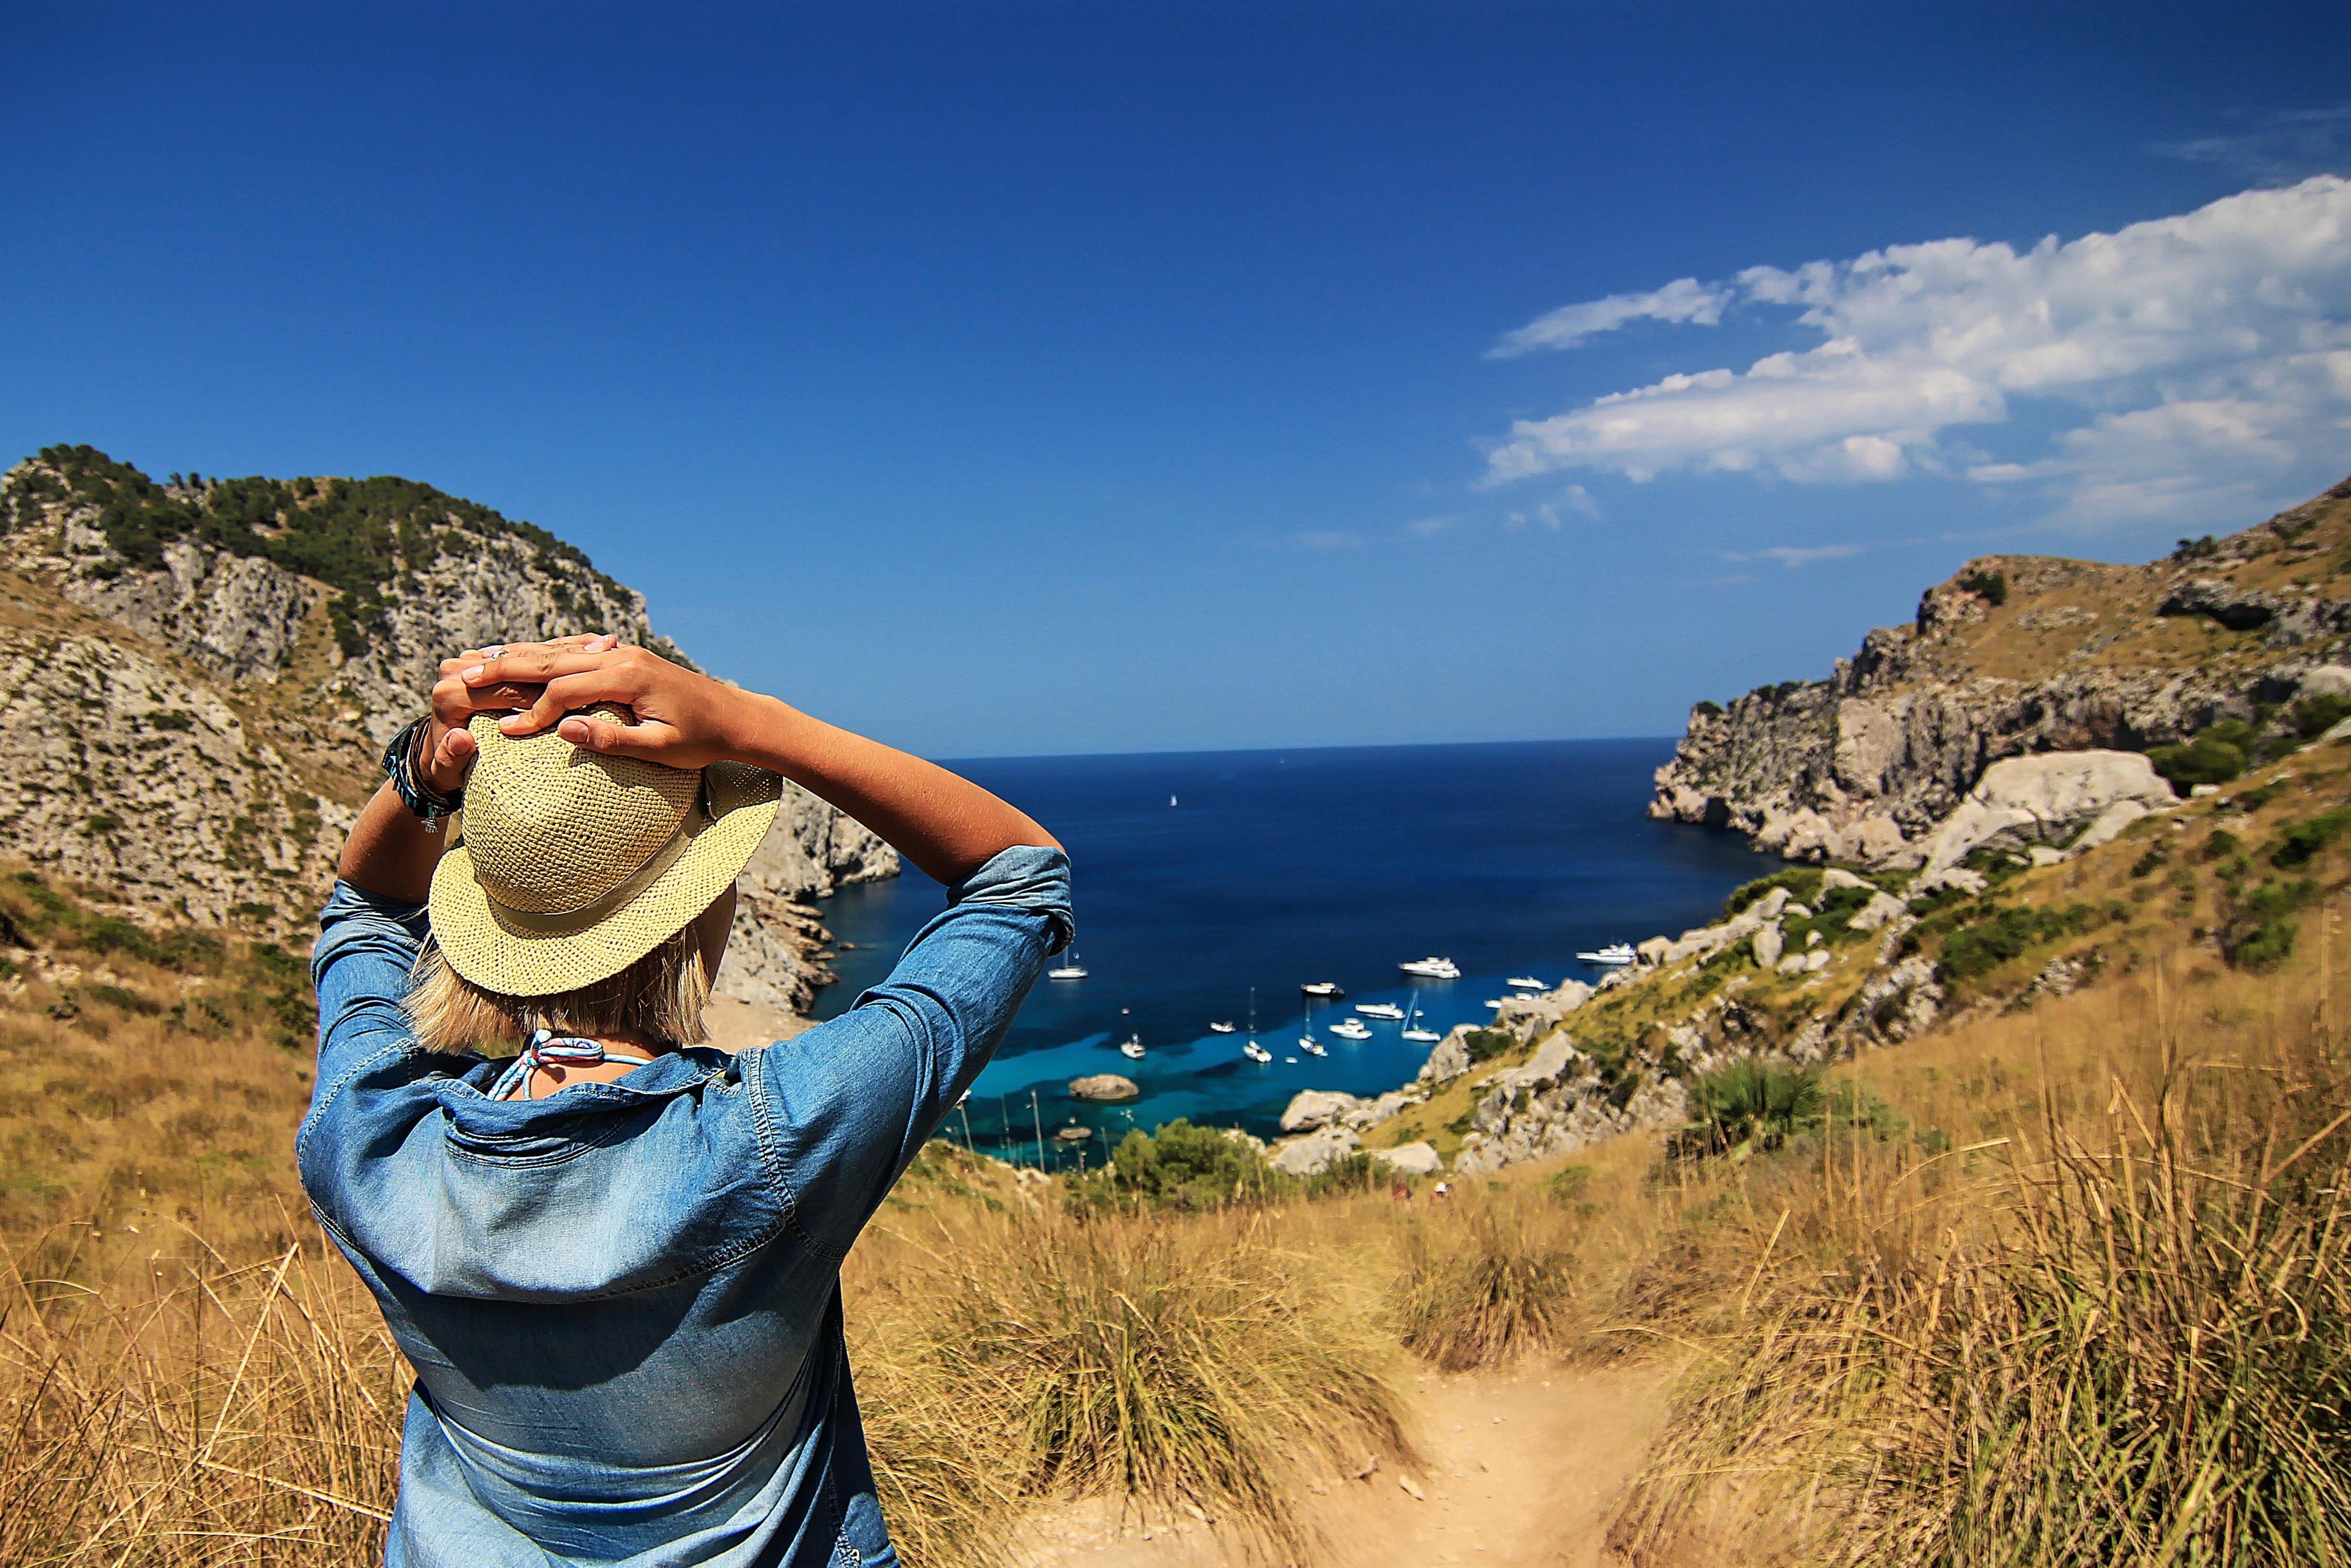 A woman in a hat and a denim jacket facing yachts in a deep blue bay encircled by cliffs